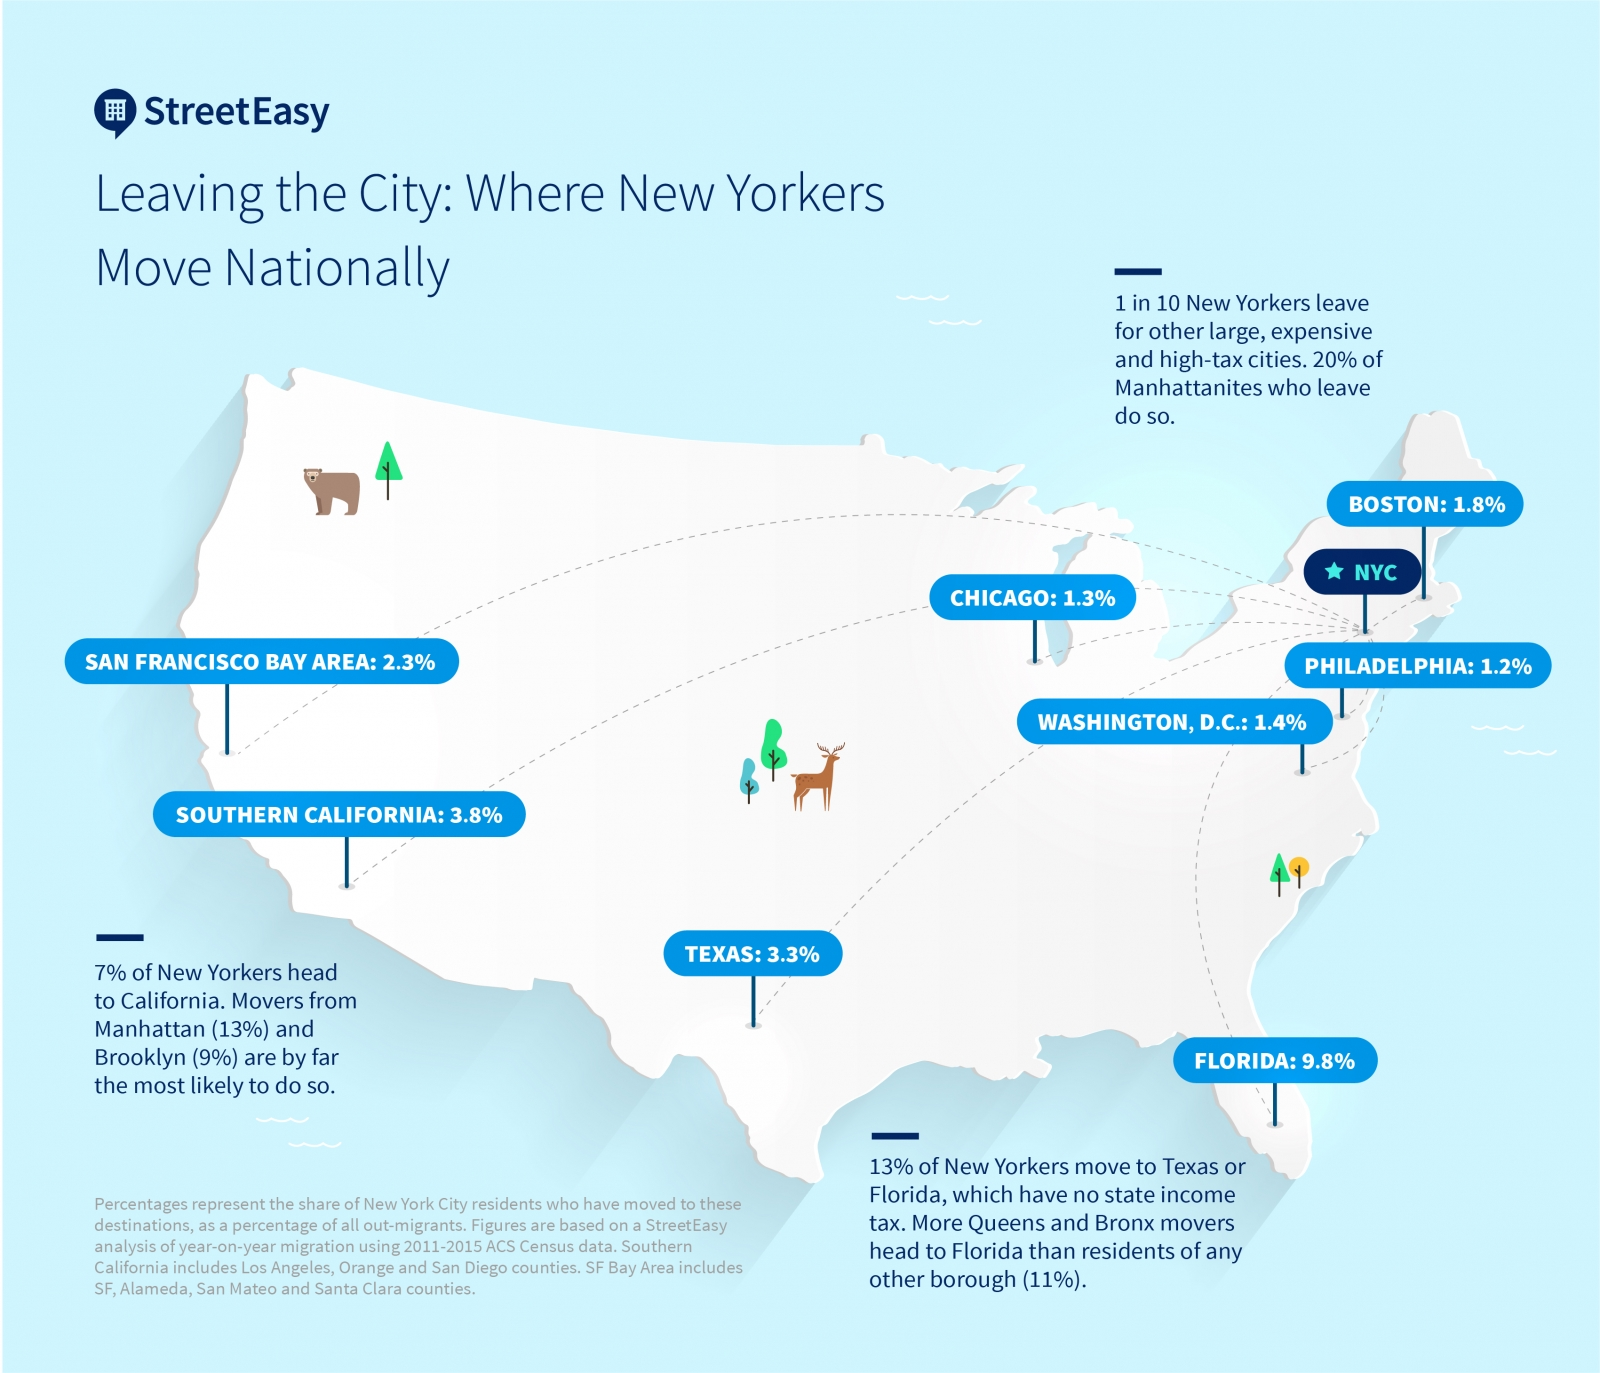 image of where new yorkers are moving nationally